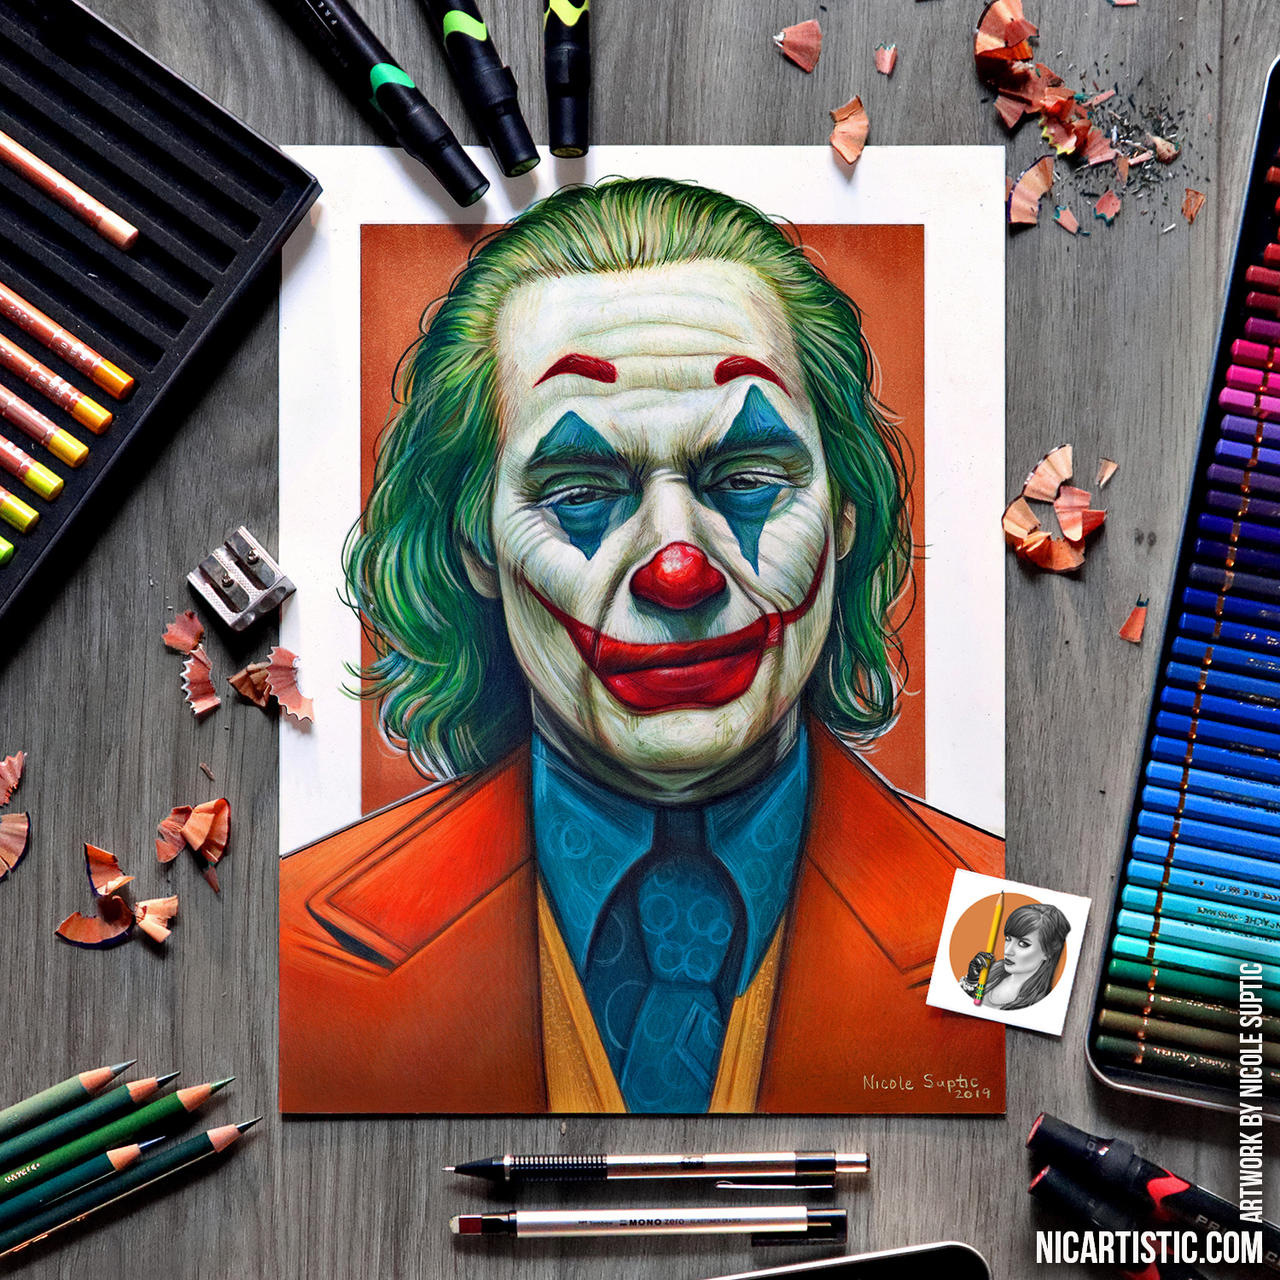 Joker Drawing Using Colored Pencils And Markers By Xnicoley On Deviantart